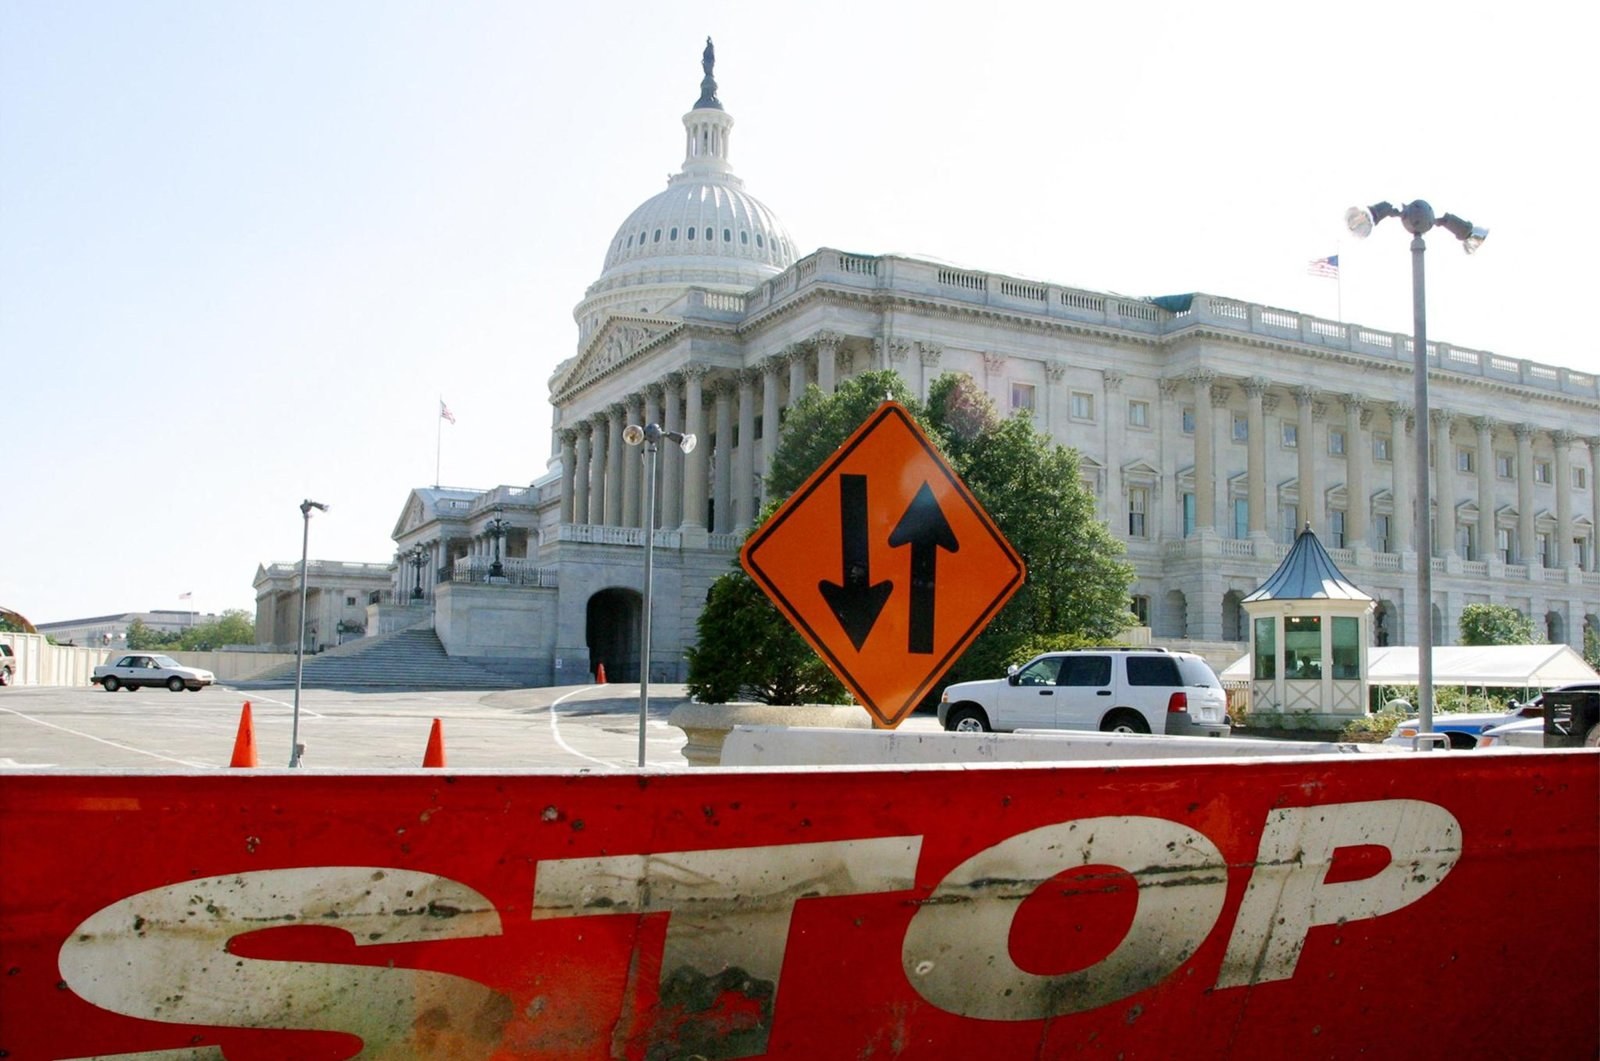 A metal barrier protects the U.S. Capitol in Washington, D.C., U.S., Sept. 3, 2002. (AFP File Photo)